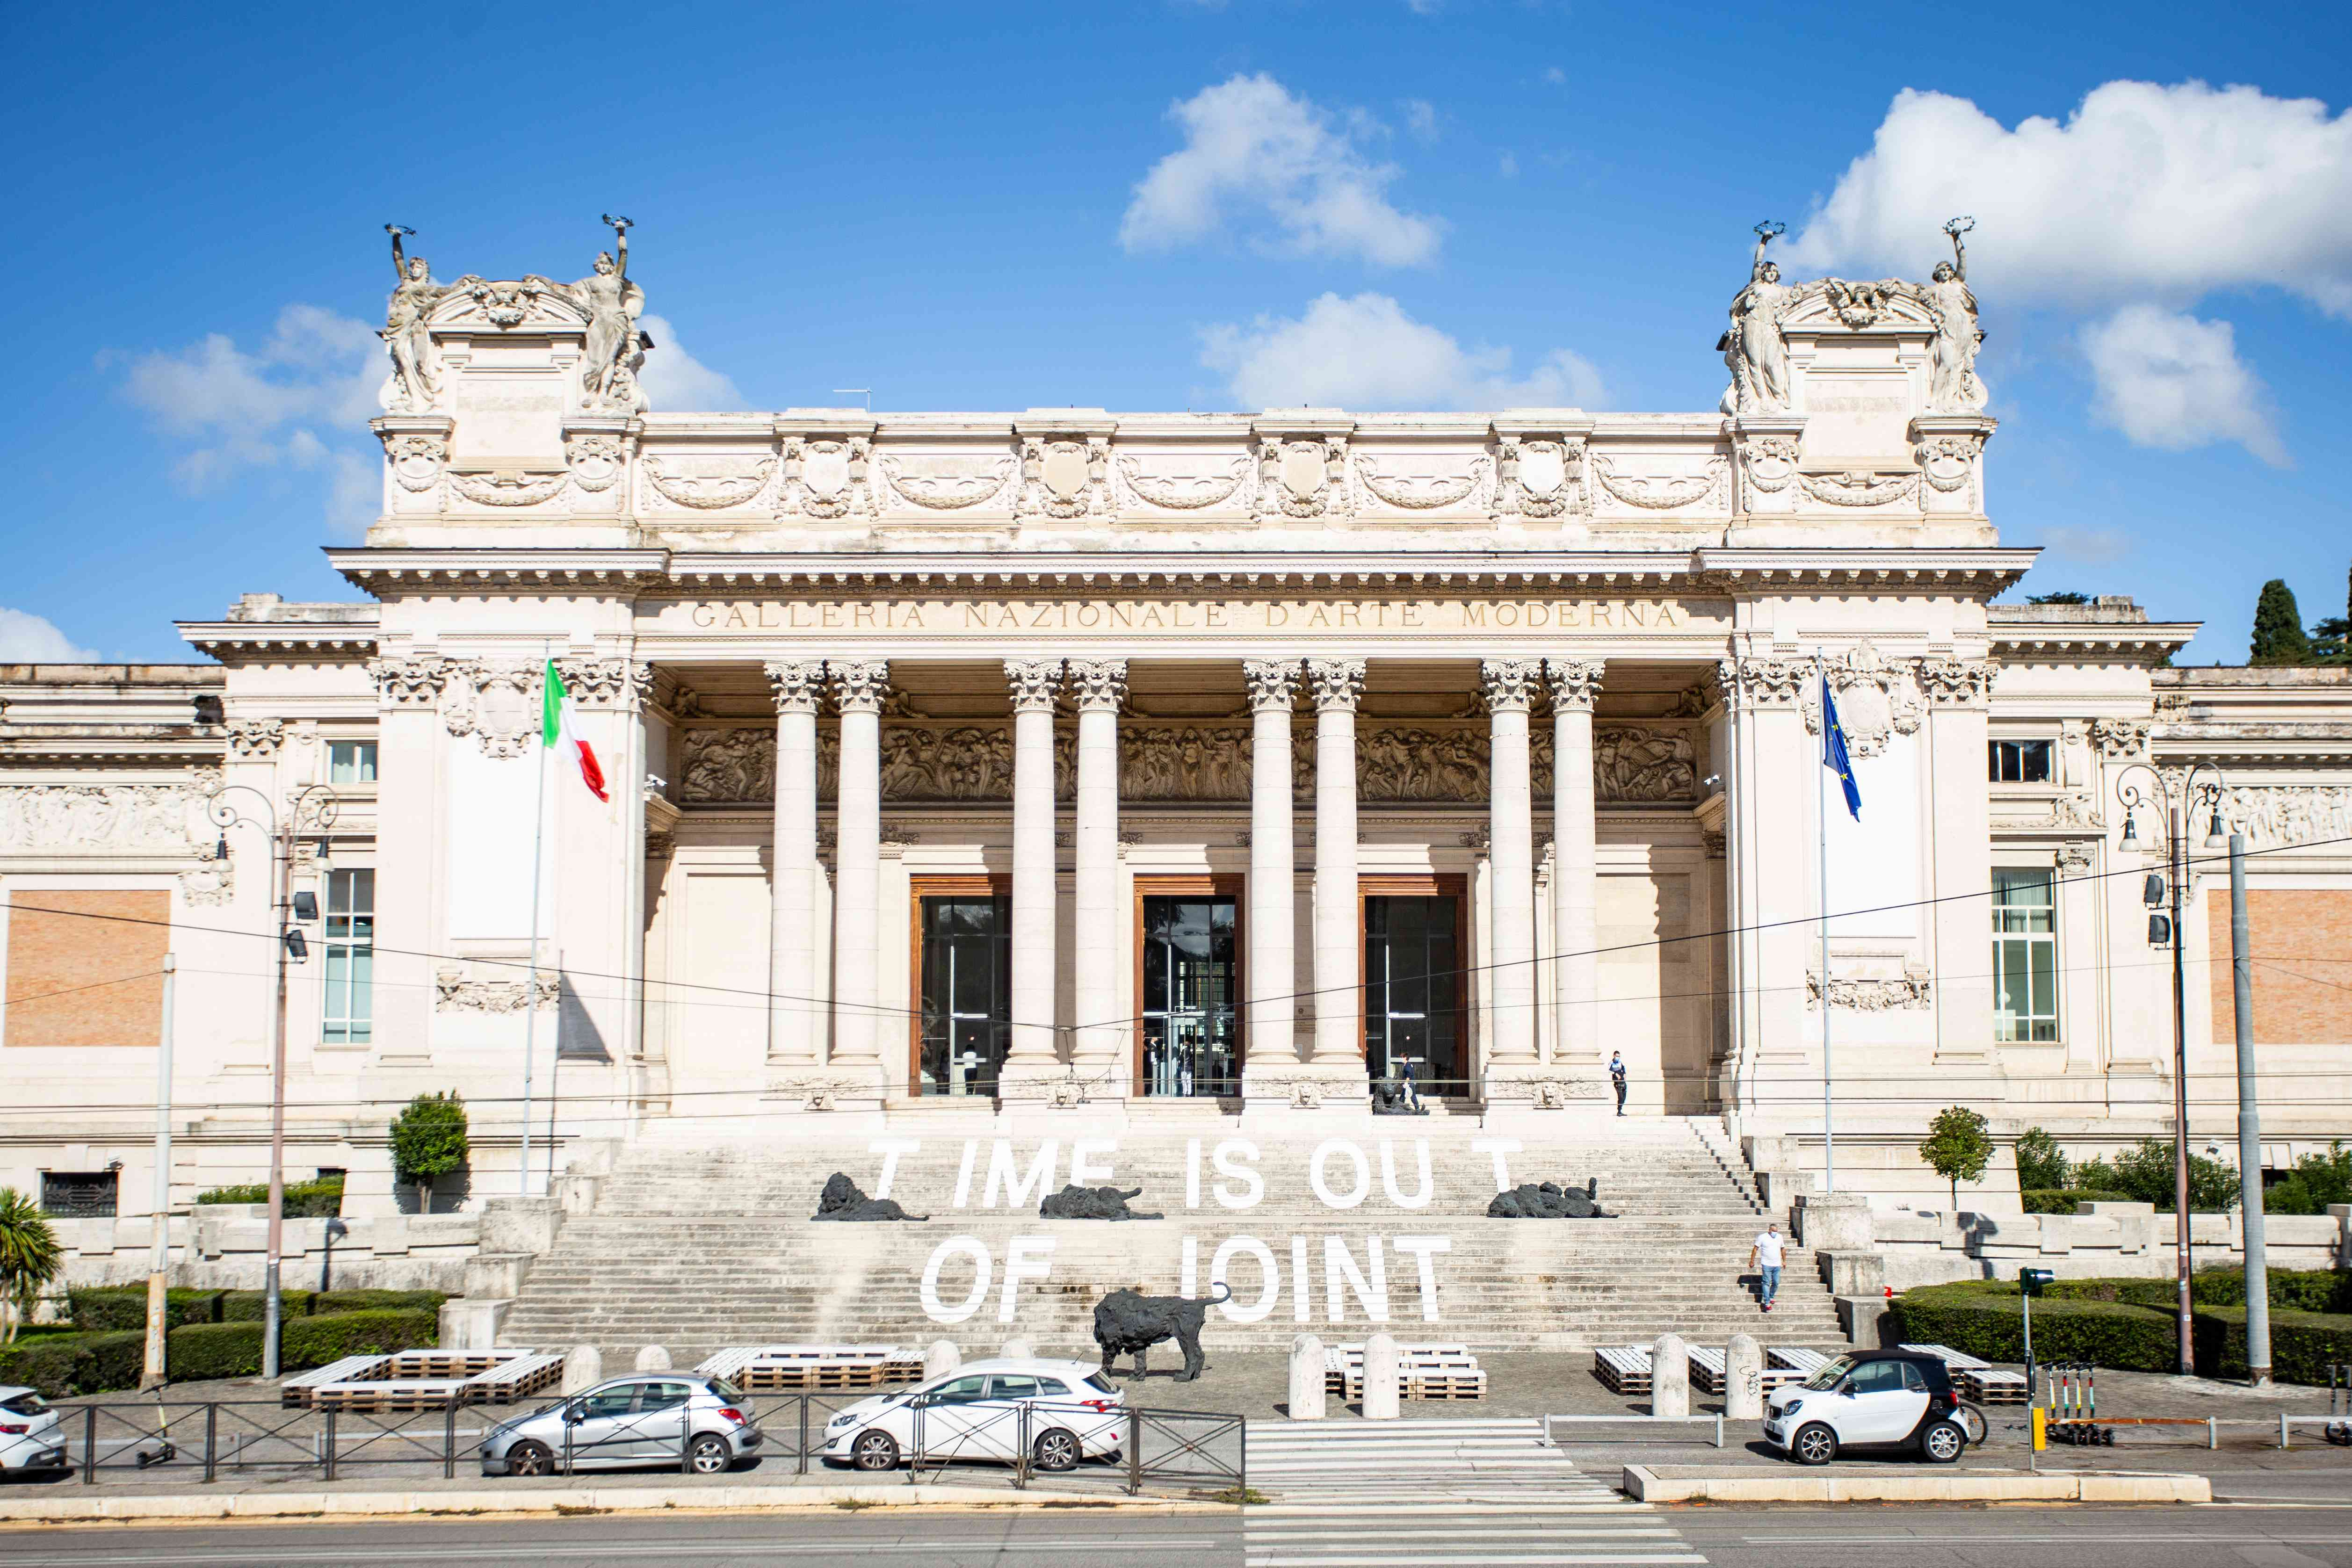 National Gallery of Modern Art in Rome, Italy